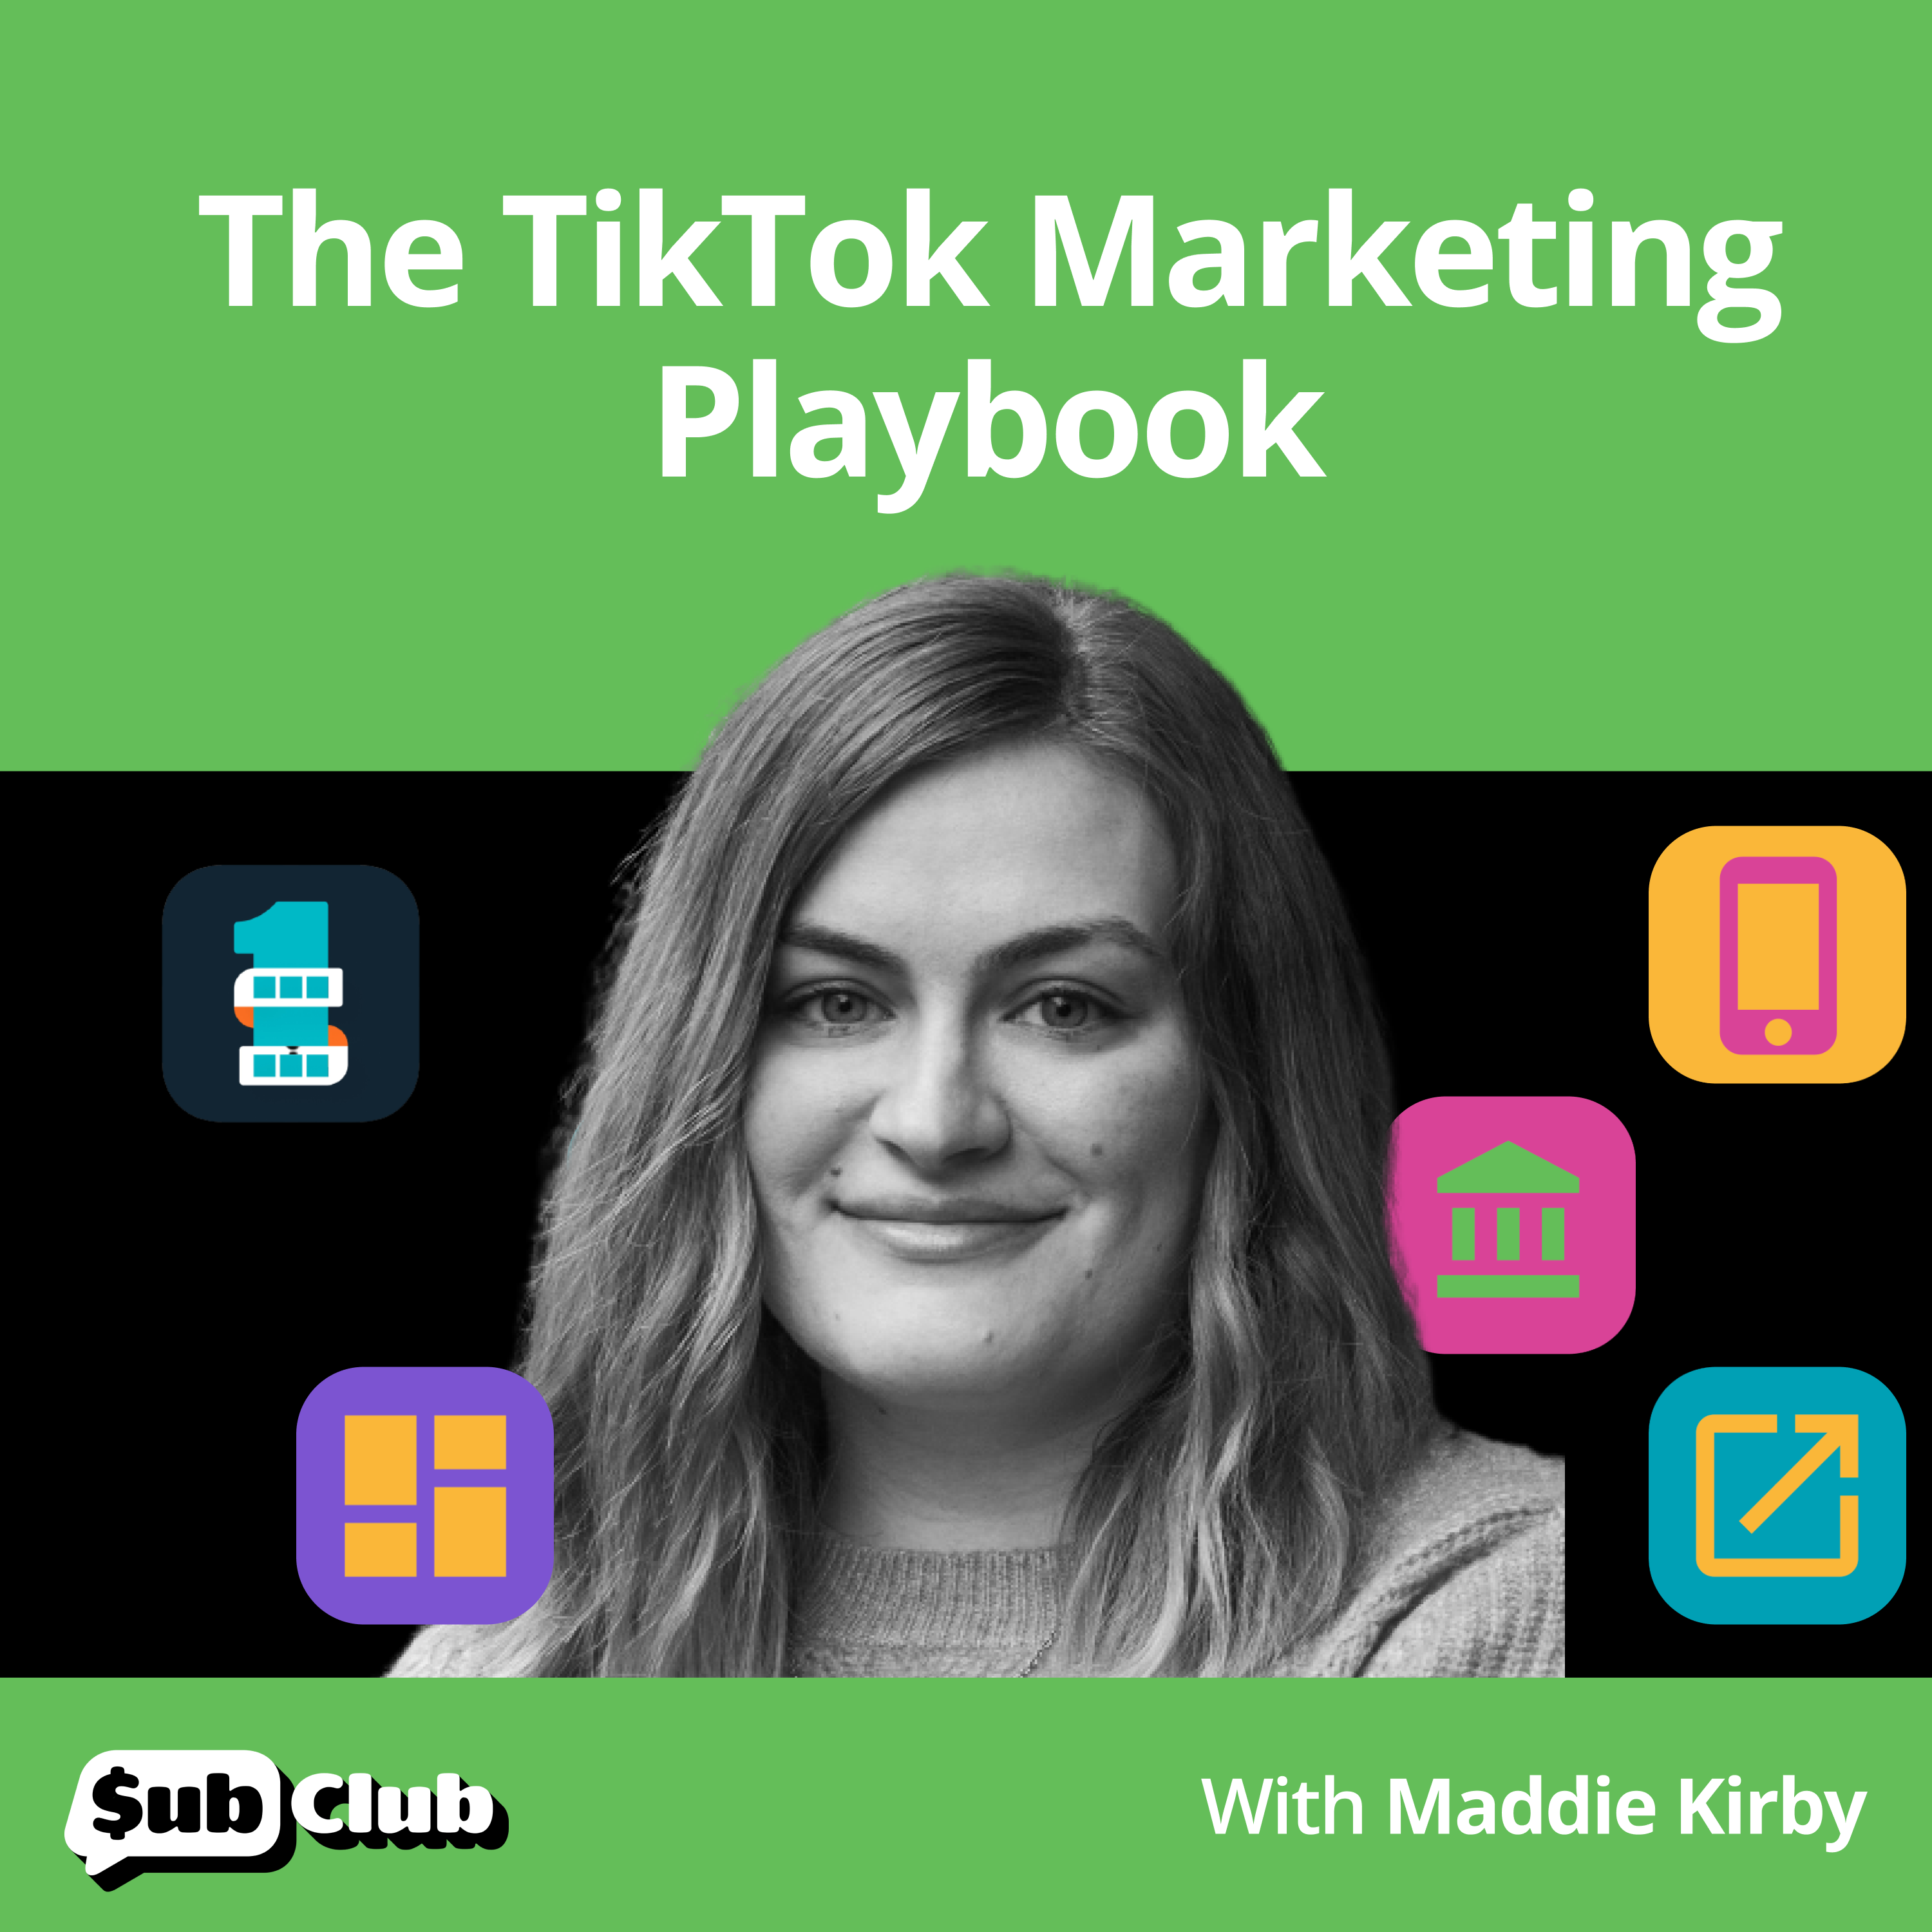 Maddie Kirby, 1 Second Everyday - Why TikTok Is a Great Place for Marketing Your App